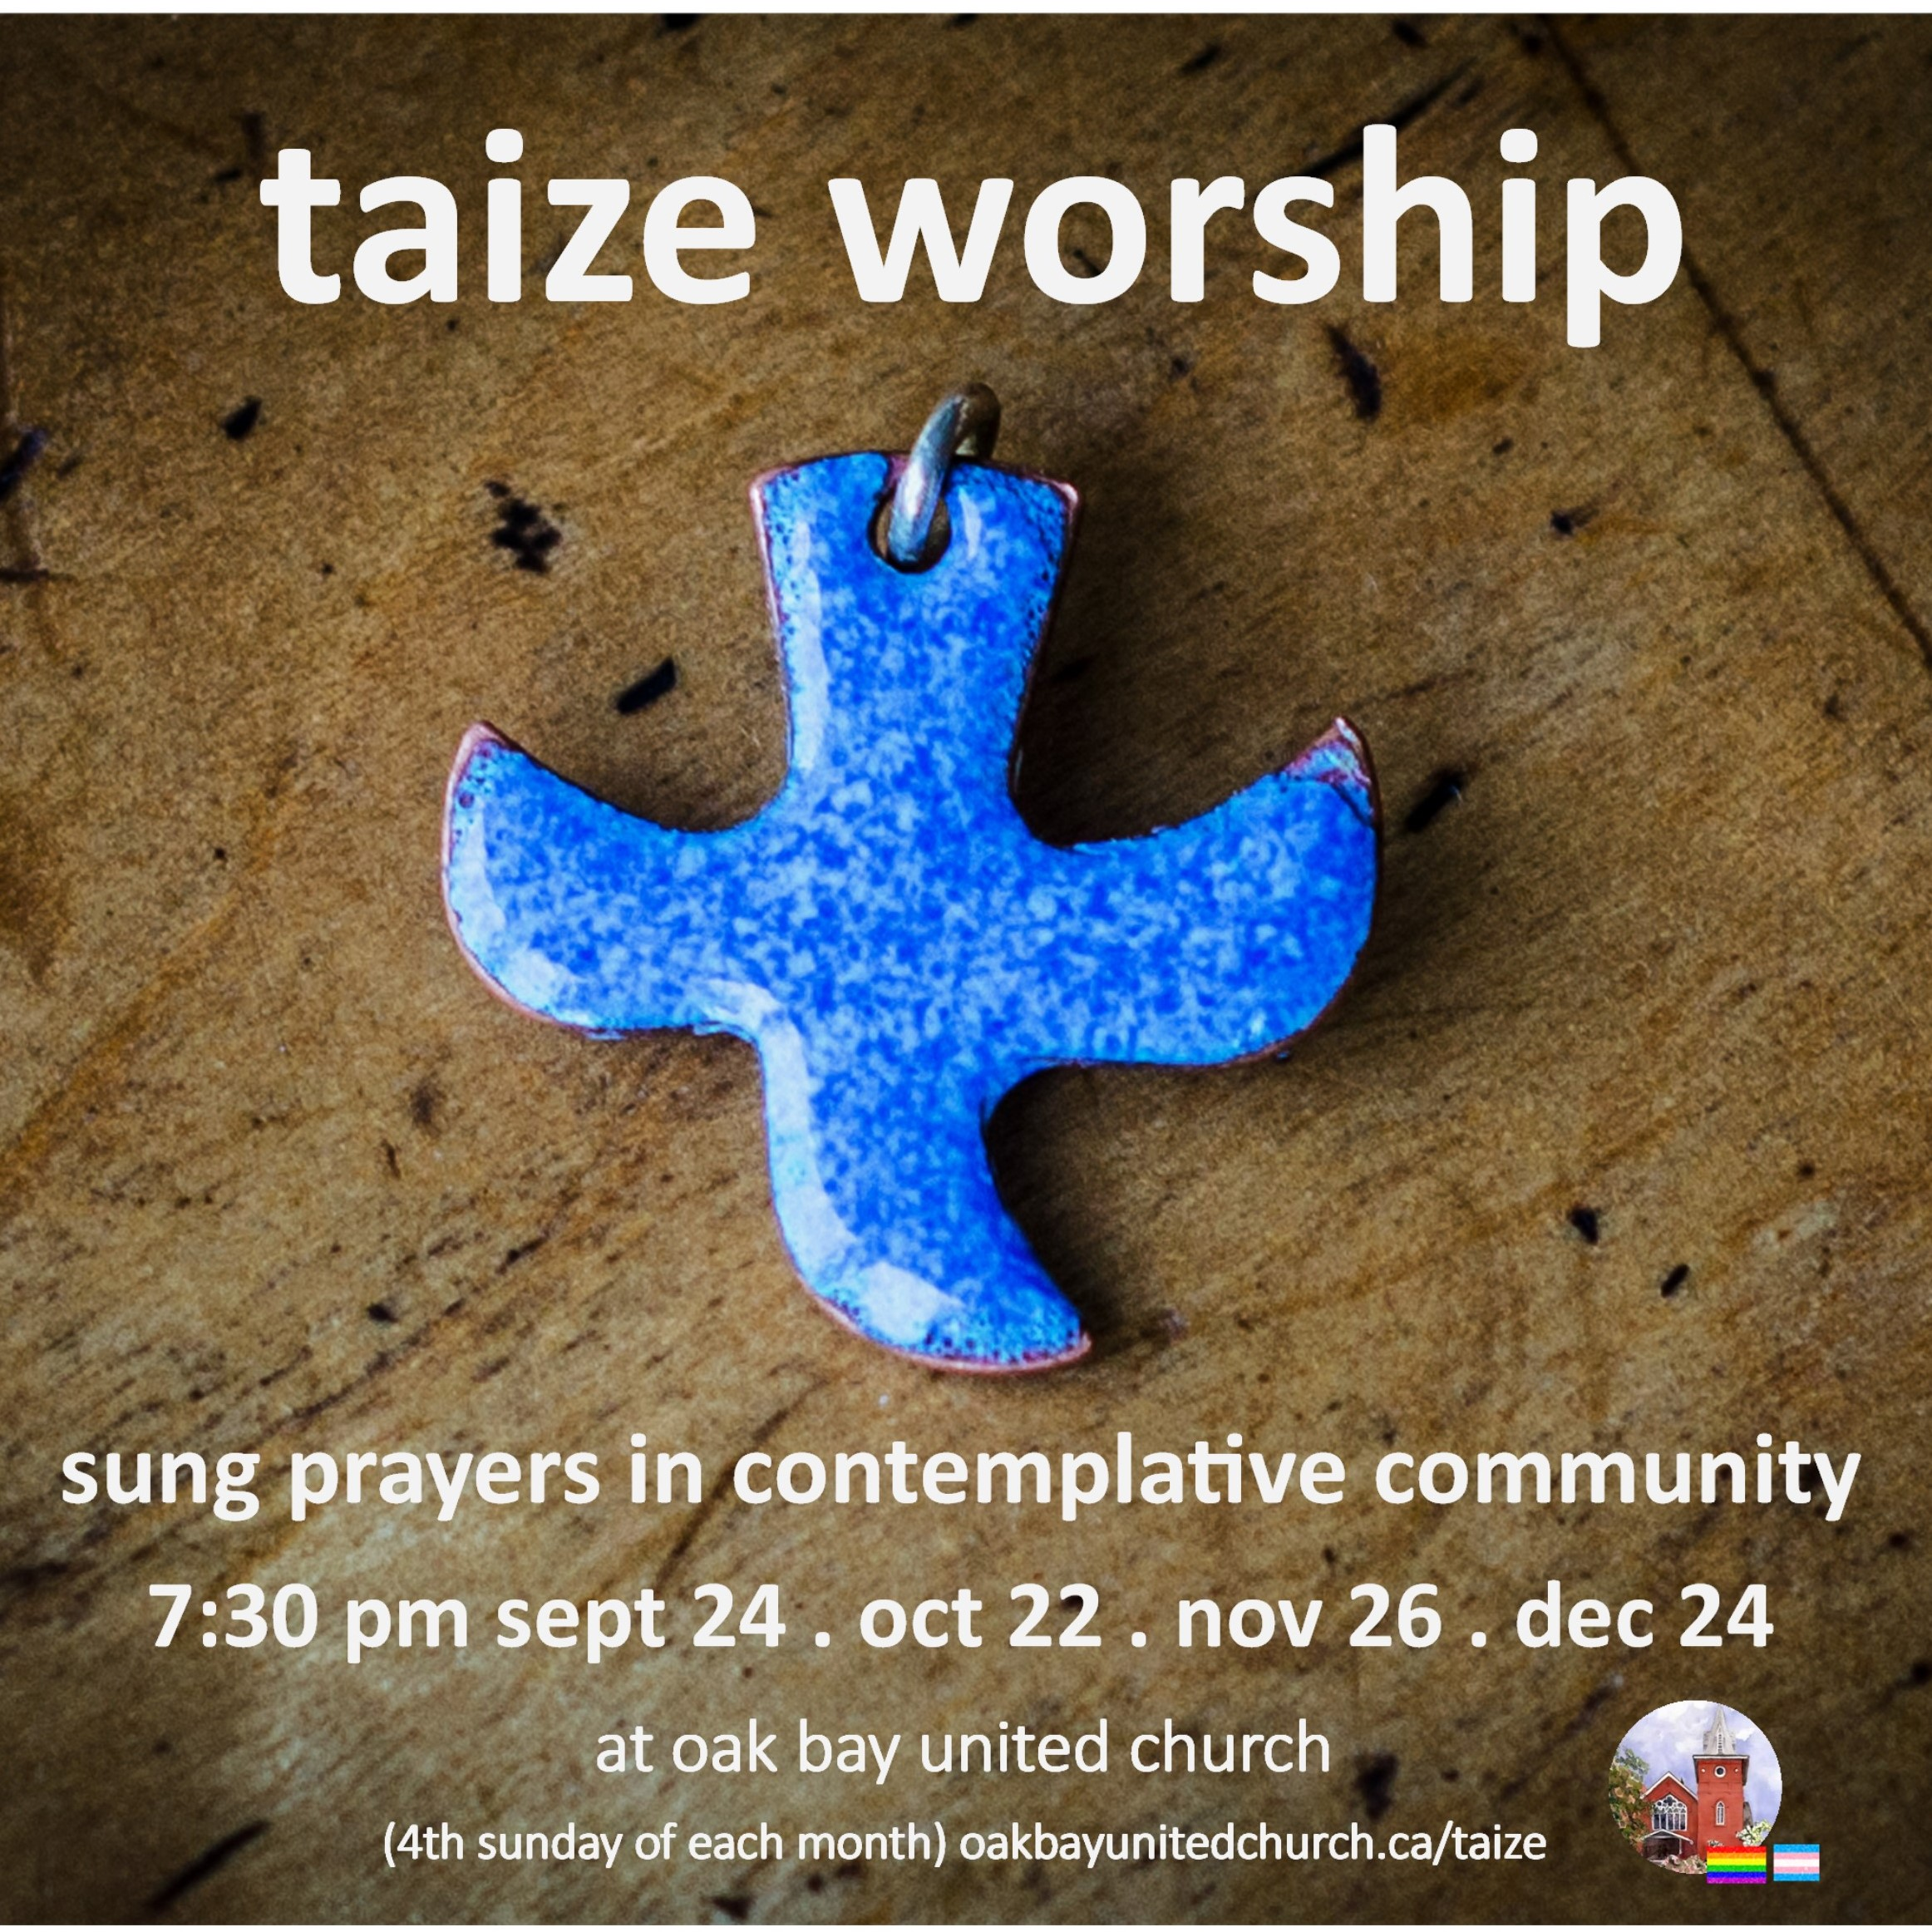 taize worship 2017 poster blue cross on wood square.jpg